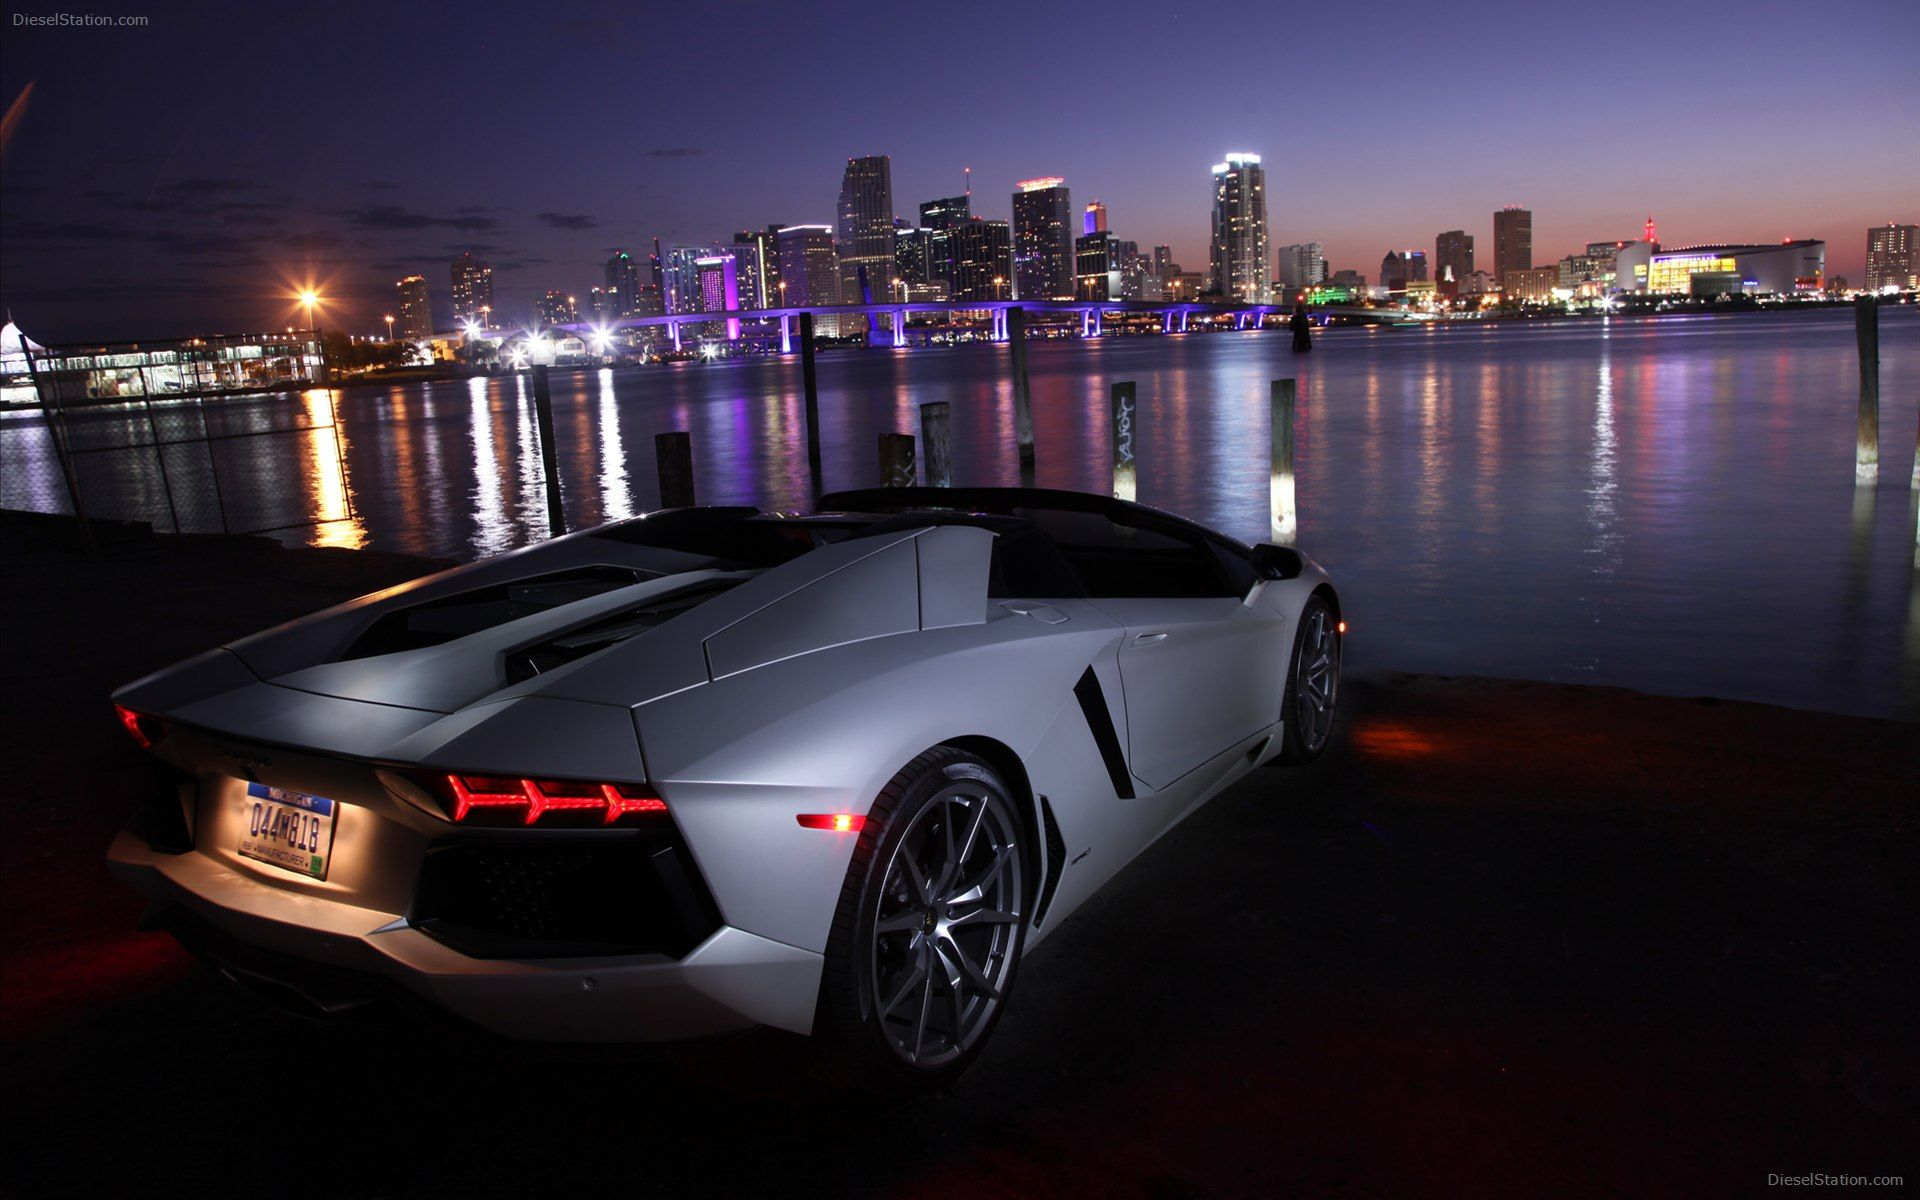 47 Best Free High Quality Exotic Car Wallpapers Wallpaperaccess